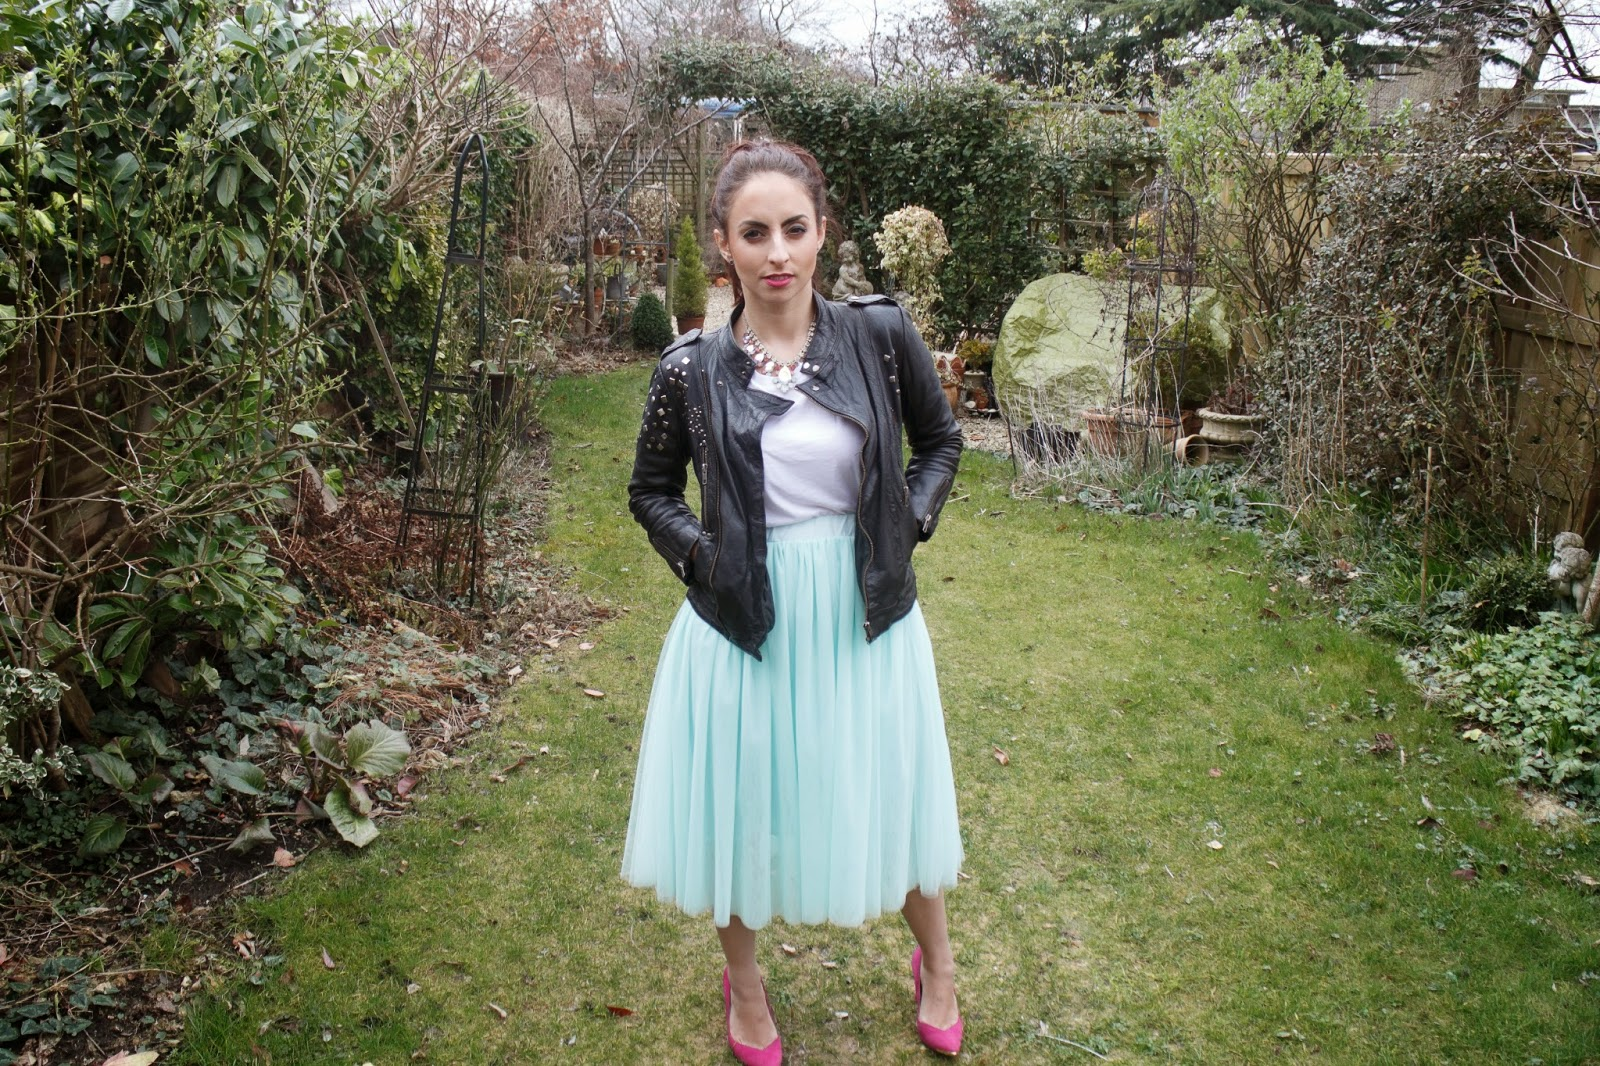 maternity style, disney princess, tulle skirt, ebay fashion, ootd, street style, leather, how to wear tuille, asos,